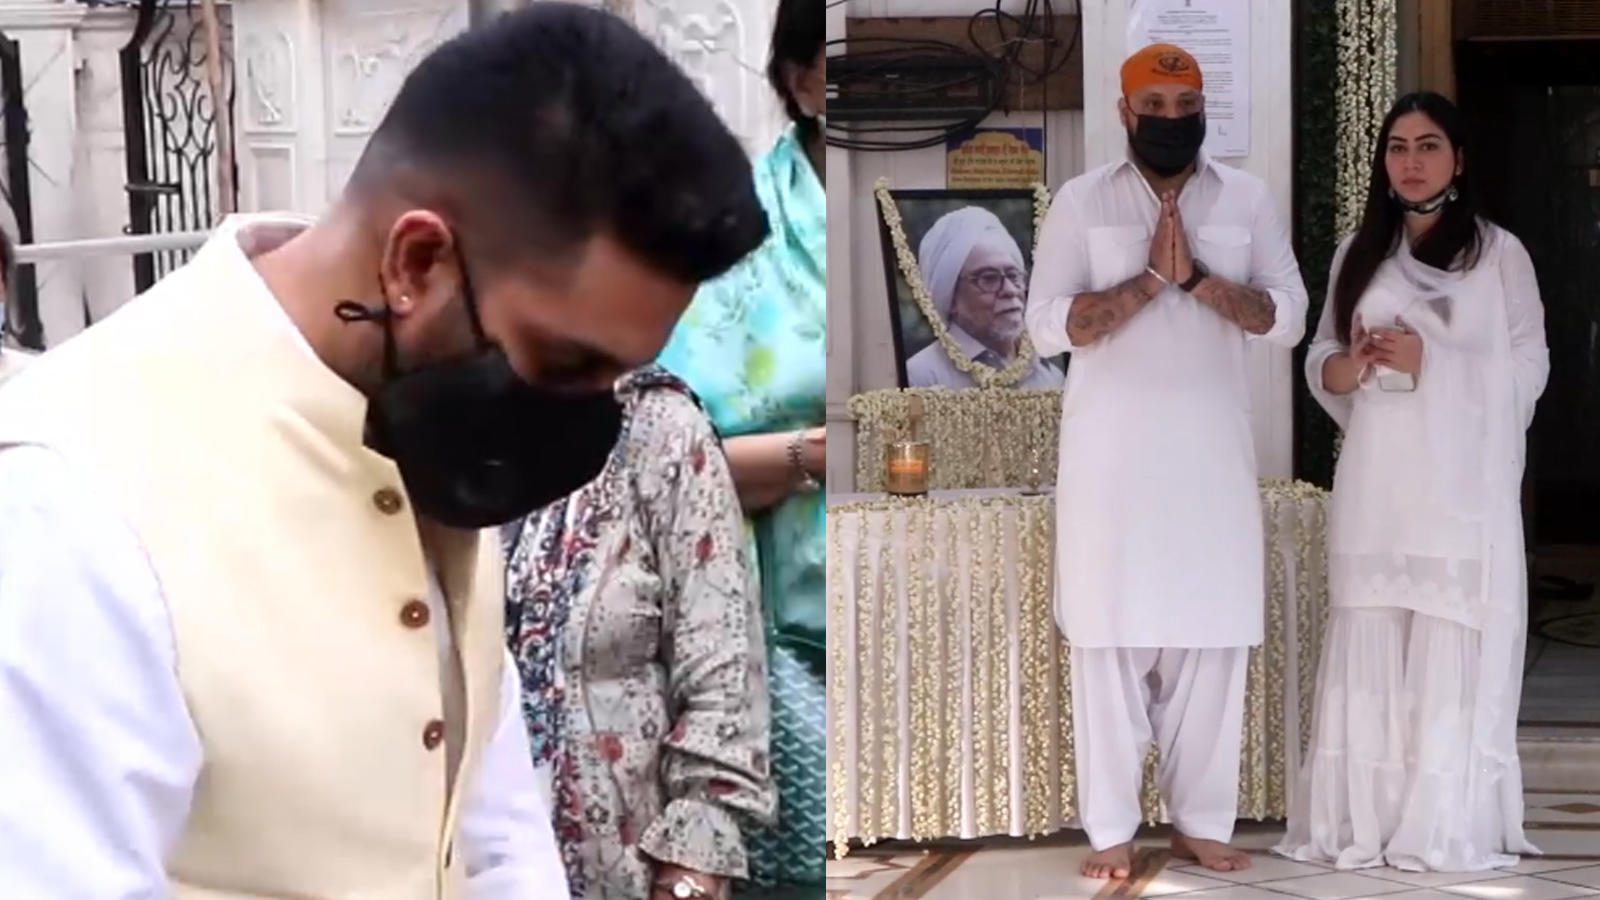 Abhishek Bachchan Raveena Tandon And Other Bollywood Celebs Attend Bunty Walia S Father S Prayer Meet Hindi Movie News Bollywood Times Of India Bunty walia is an indian film producer, who has worked predominantly in bollywood. abhishek bachchan raveena tandon and other bollywood celebs attend bunty walia s father s prayer meet